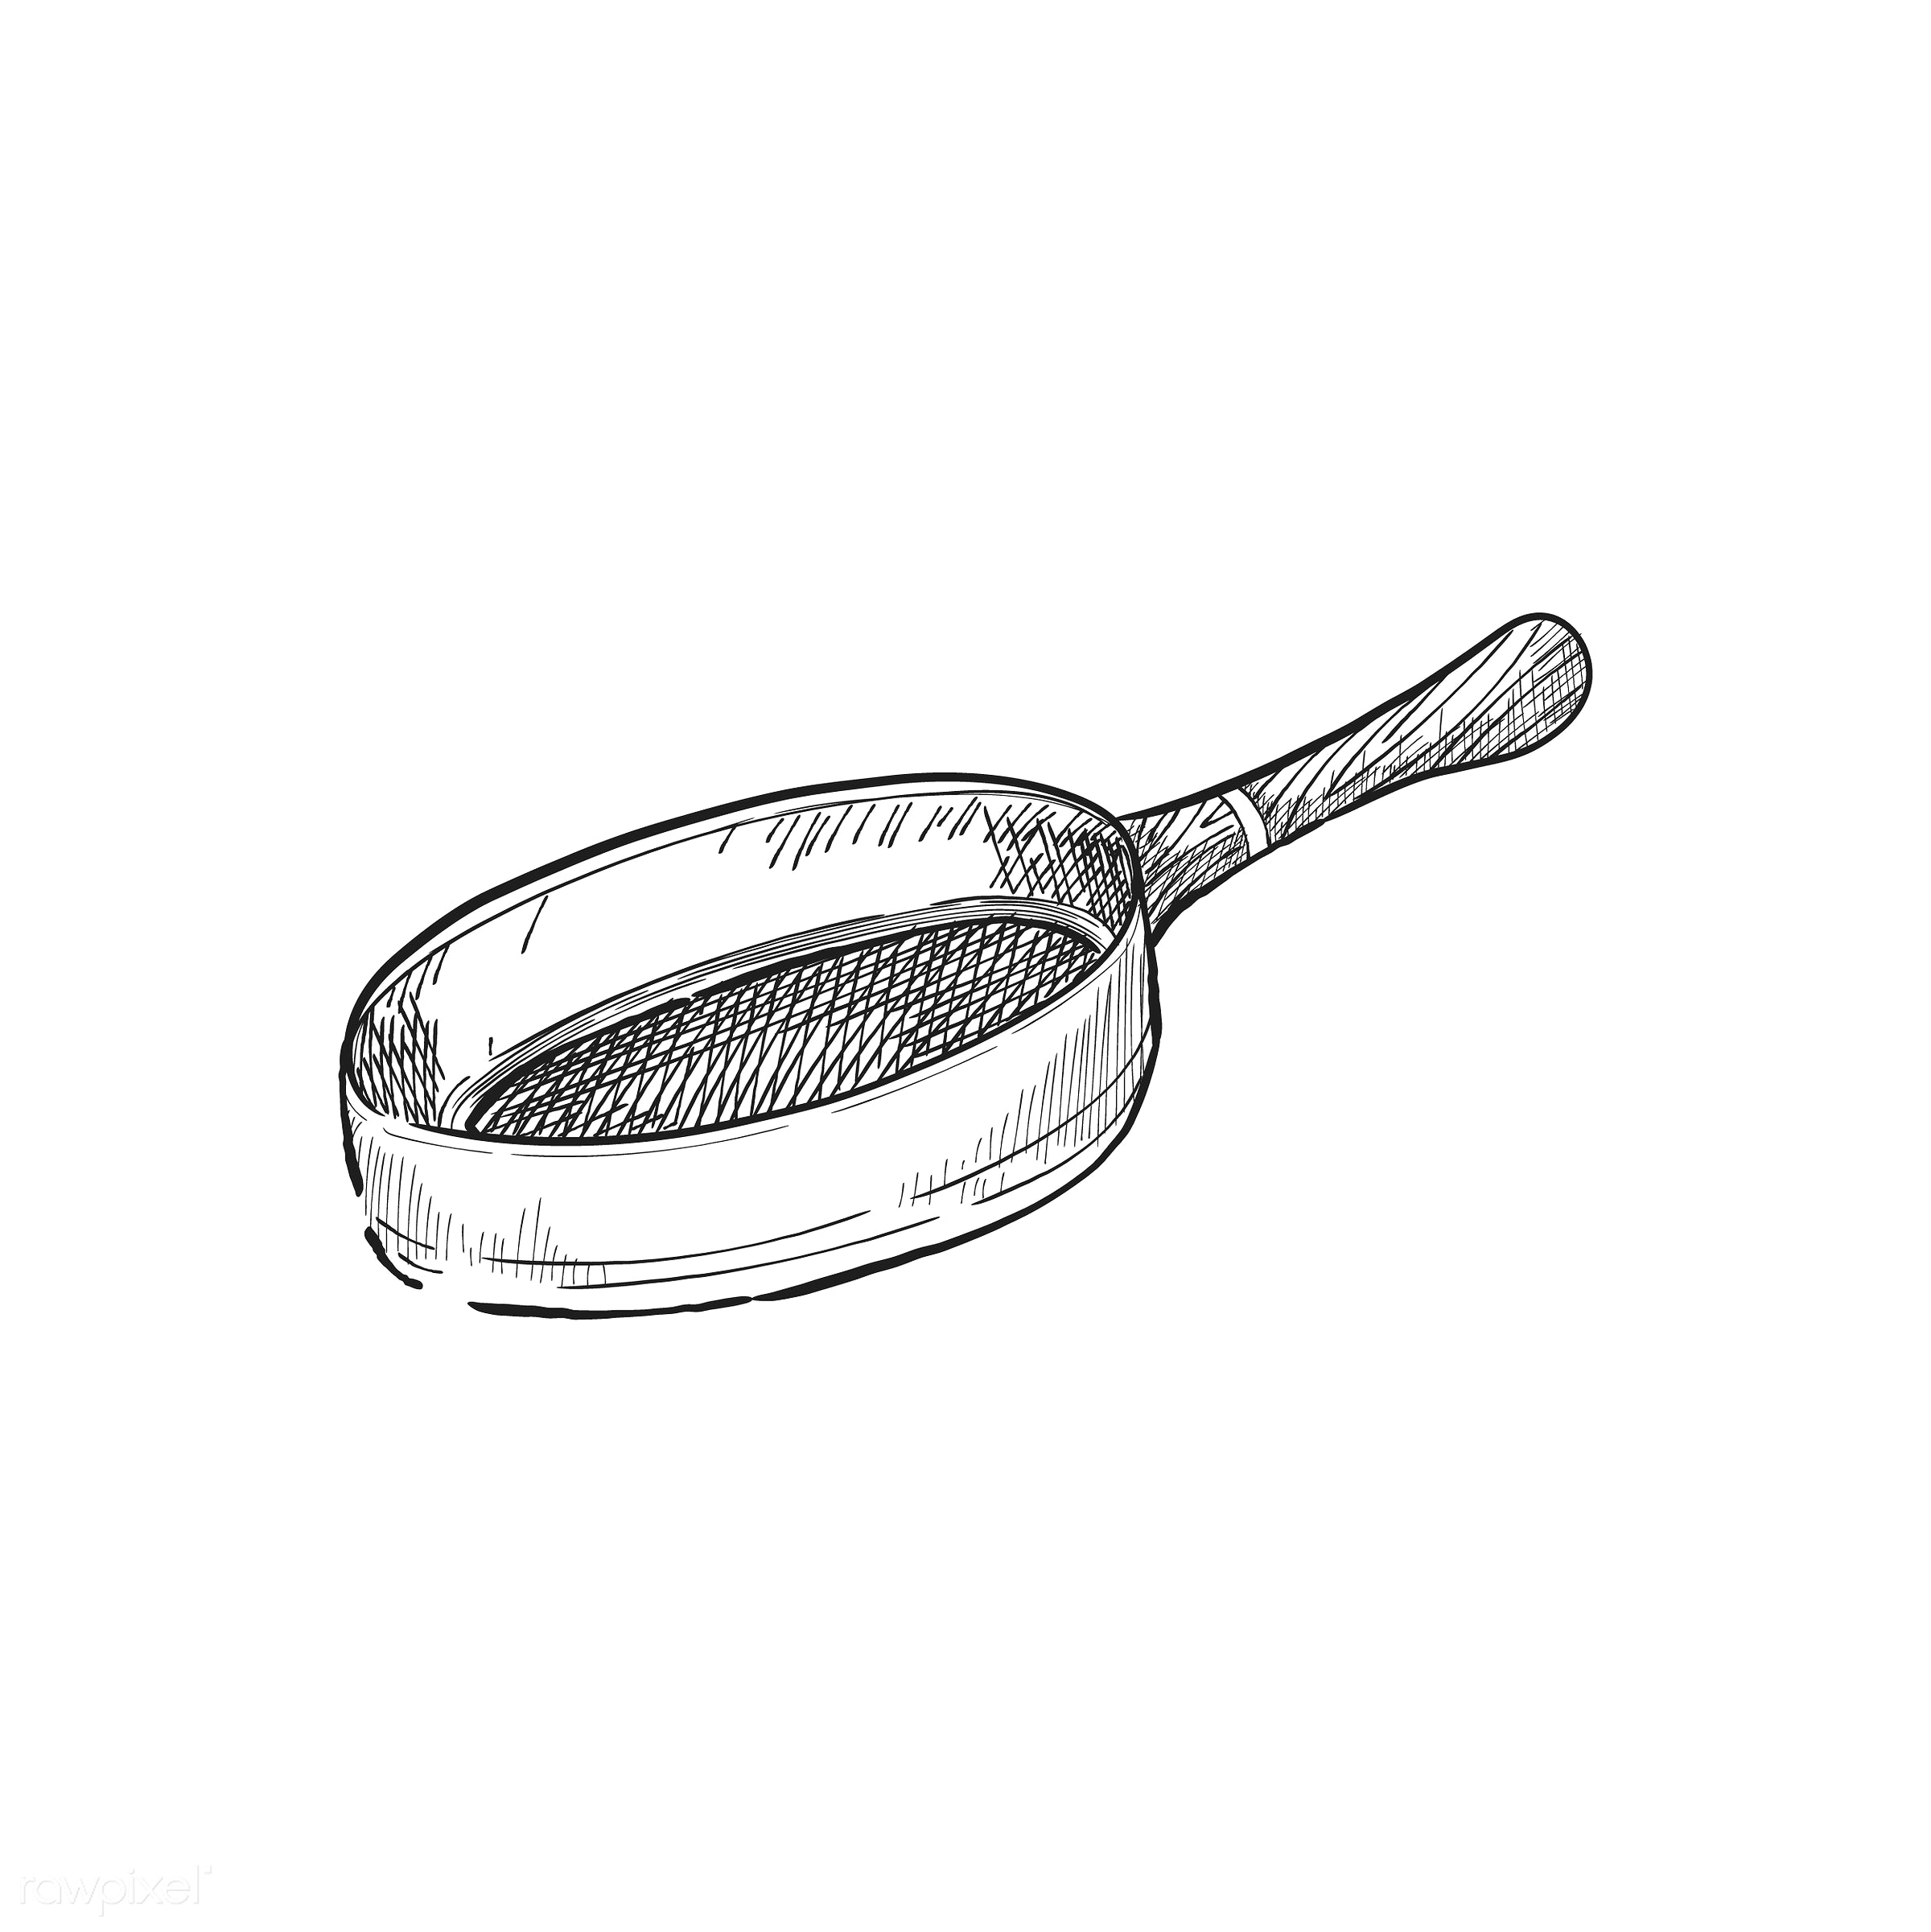 Vintage illustration of a strainer - antique, bake, bakery, black, design, drawing, equipment, graphic, hand drawing, hand...